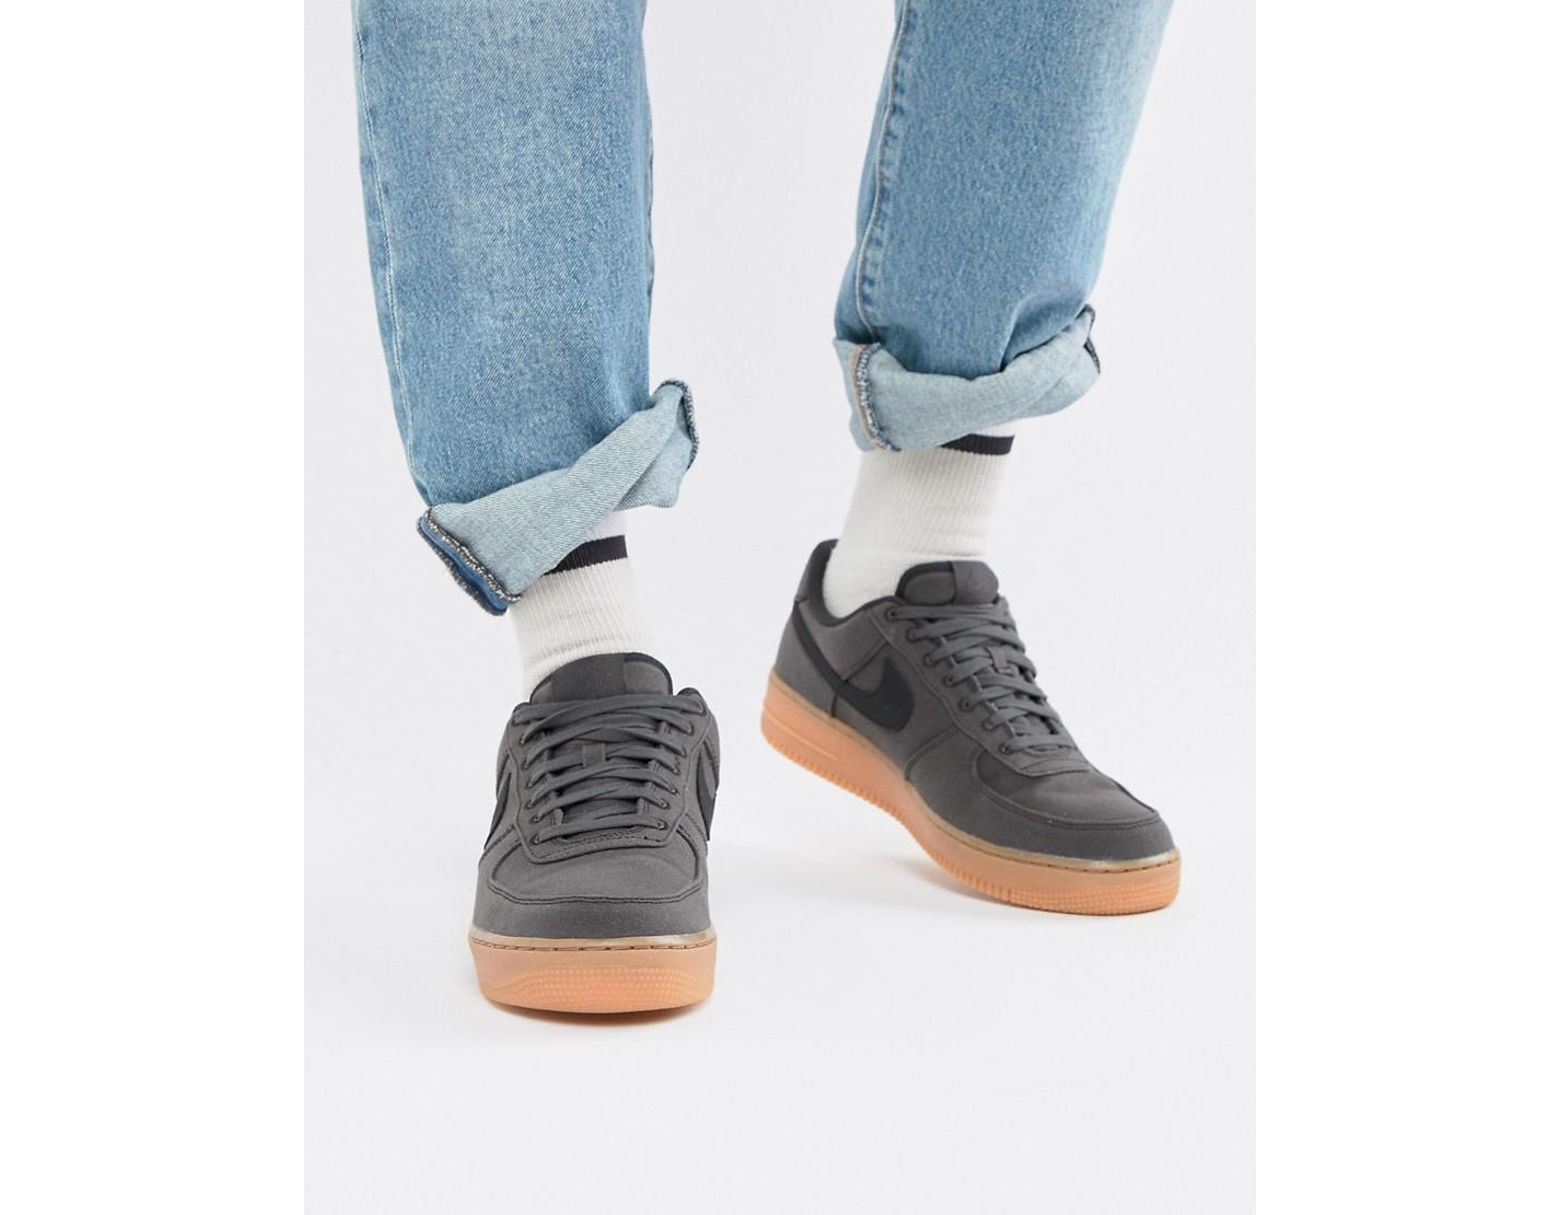 quality design 78b57 31a70 Nike Air Force 1  07 Style Sneakers With Gumsole In Black Aq0117-002 in  Black for Men - Lyst